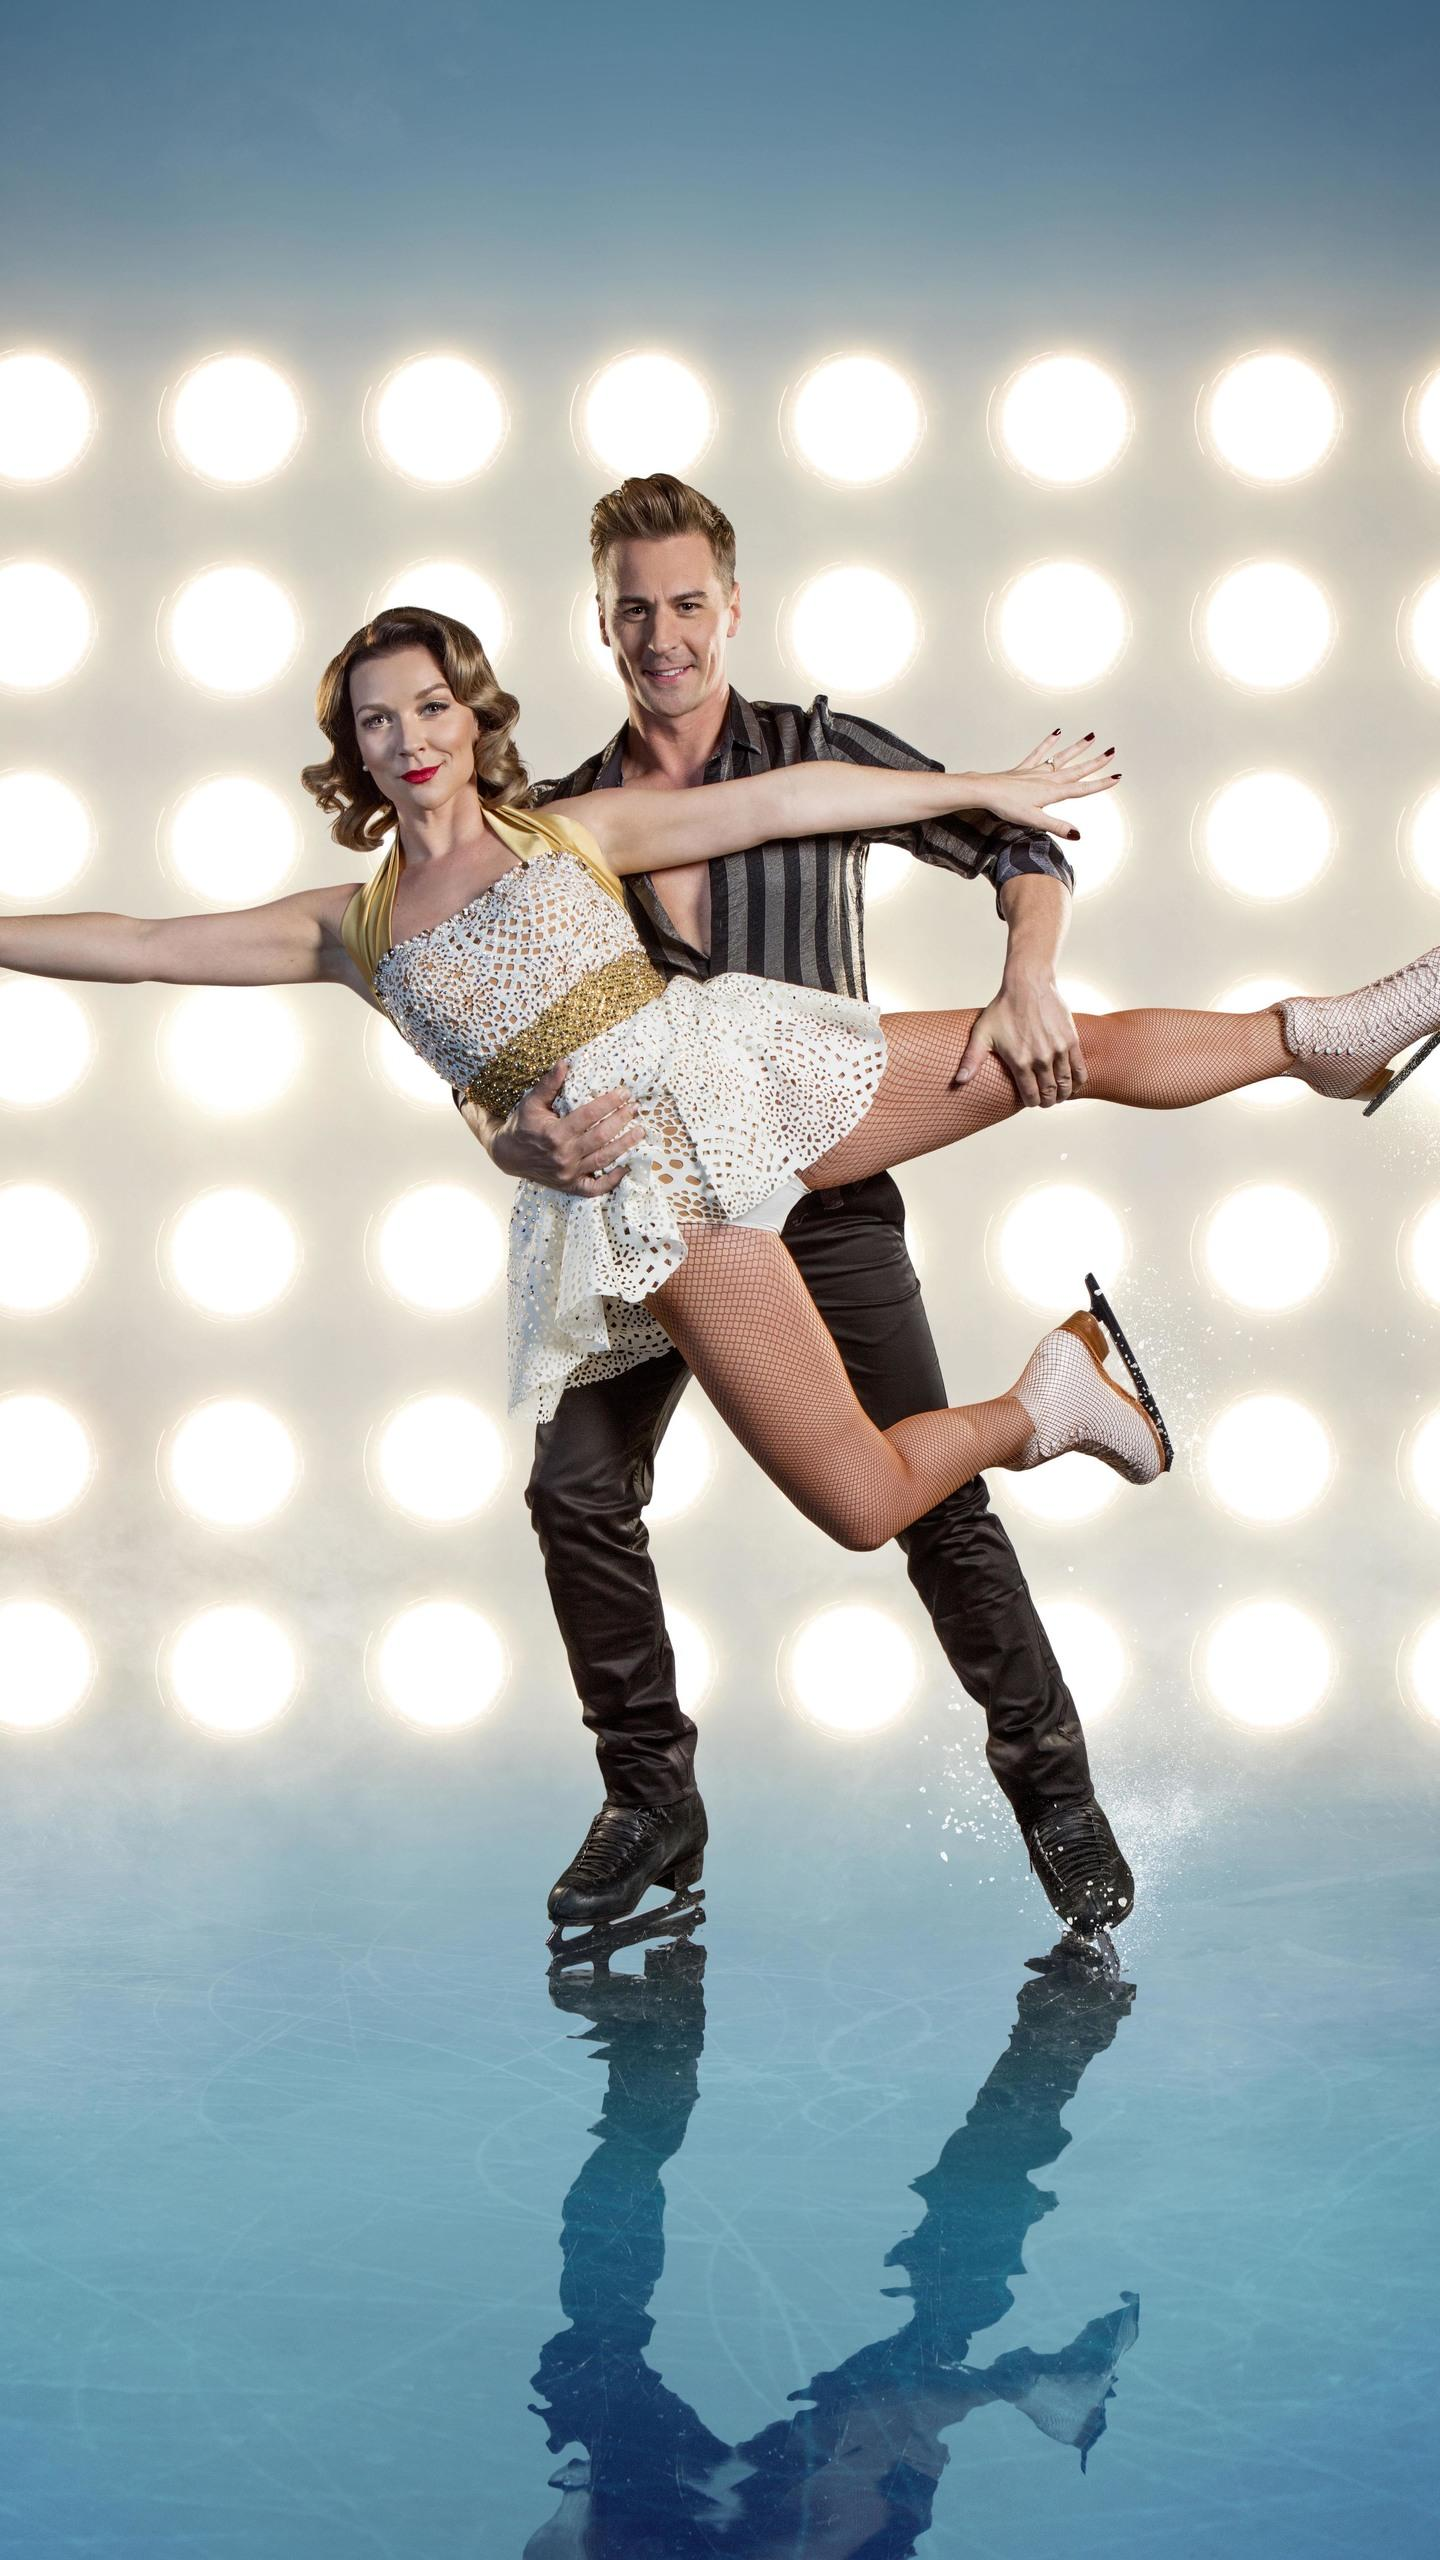 1440x2560 Dancing On Ice Candice Brown Matt Evers 8k Samsung Galaxy